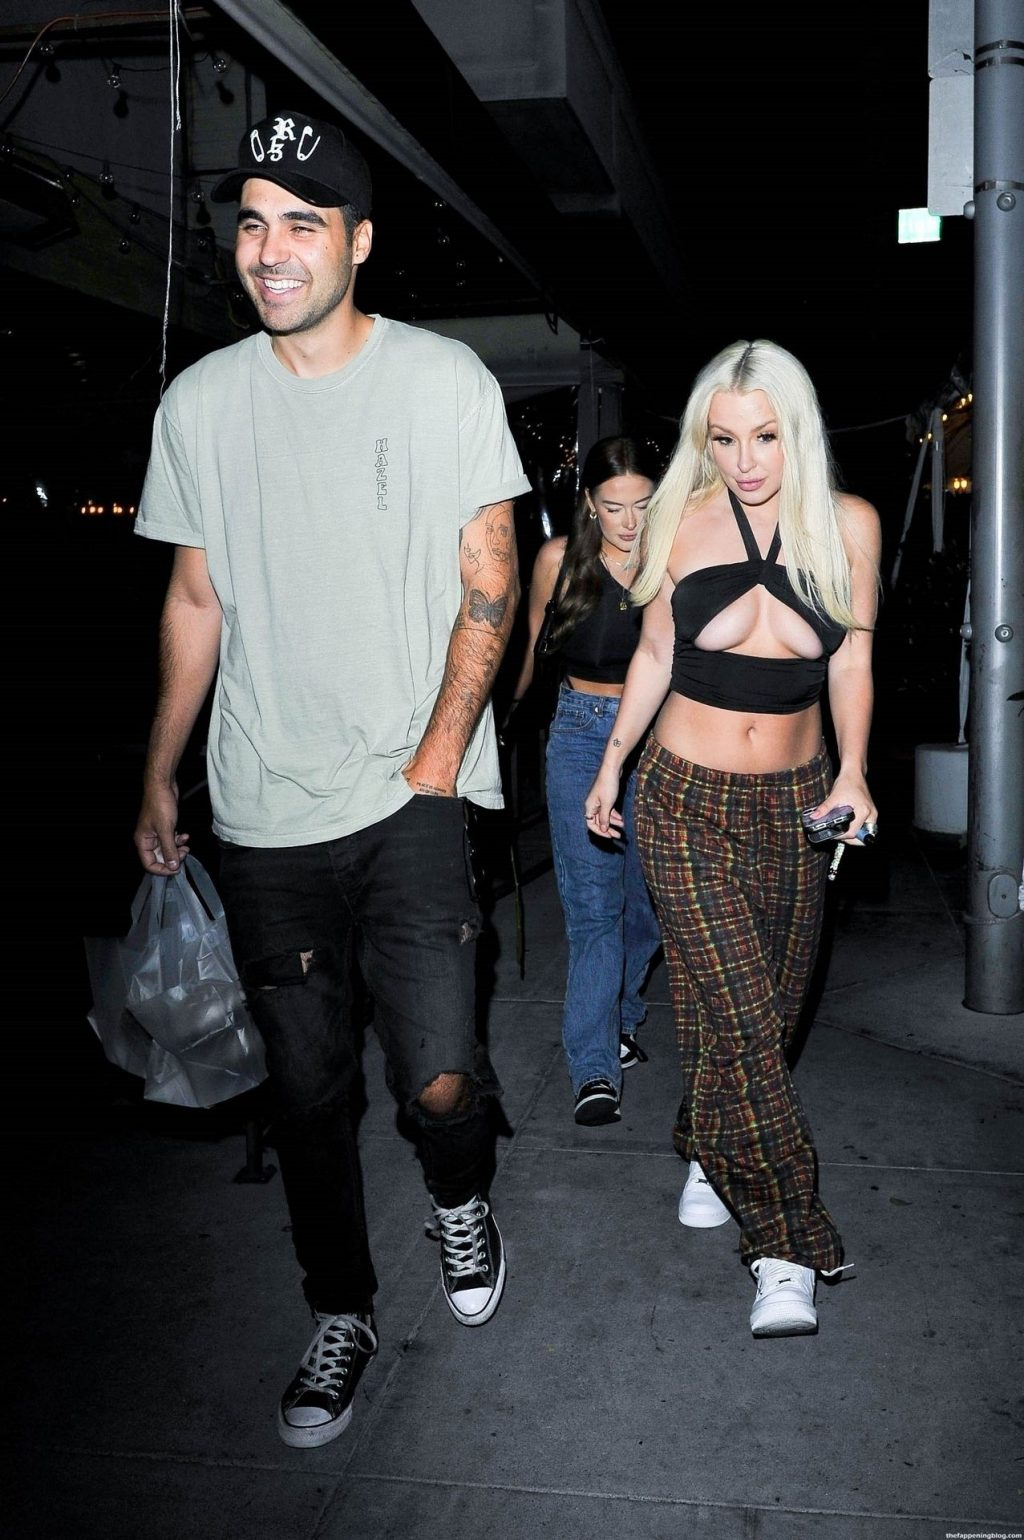 Busty Tana Mongeau and Her Good Friend Hunter Moreno Grab Dinner at Il Pastaio (45 Photos)